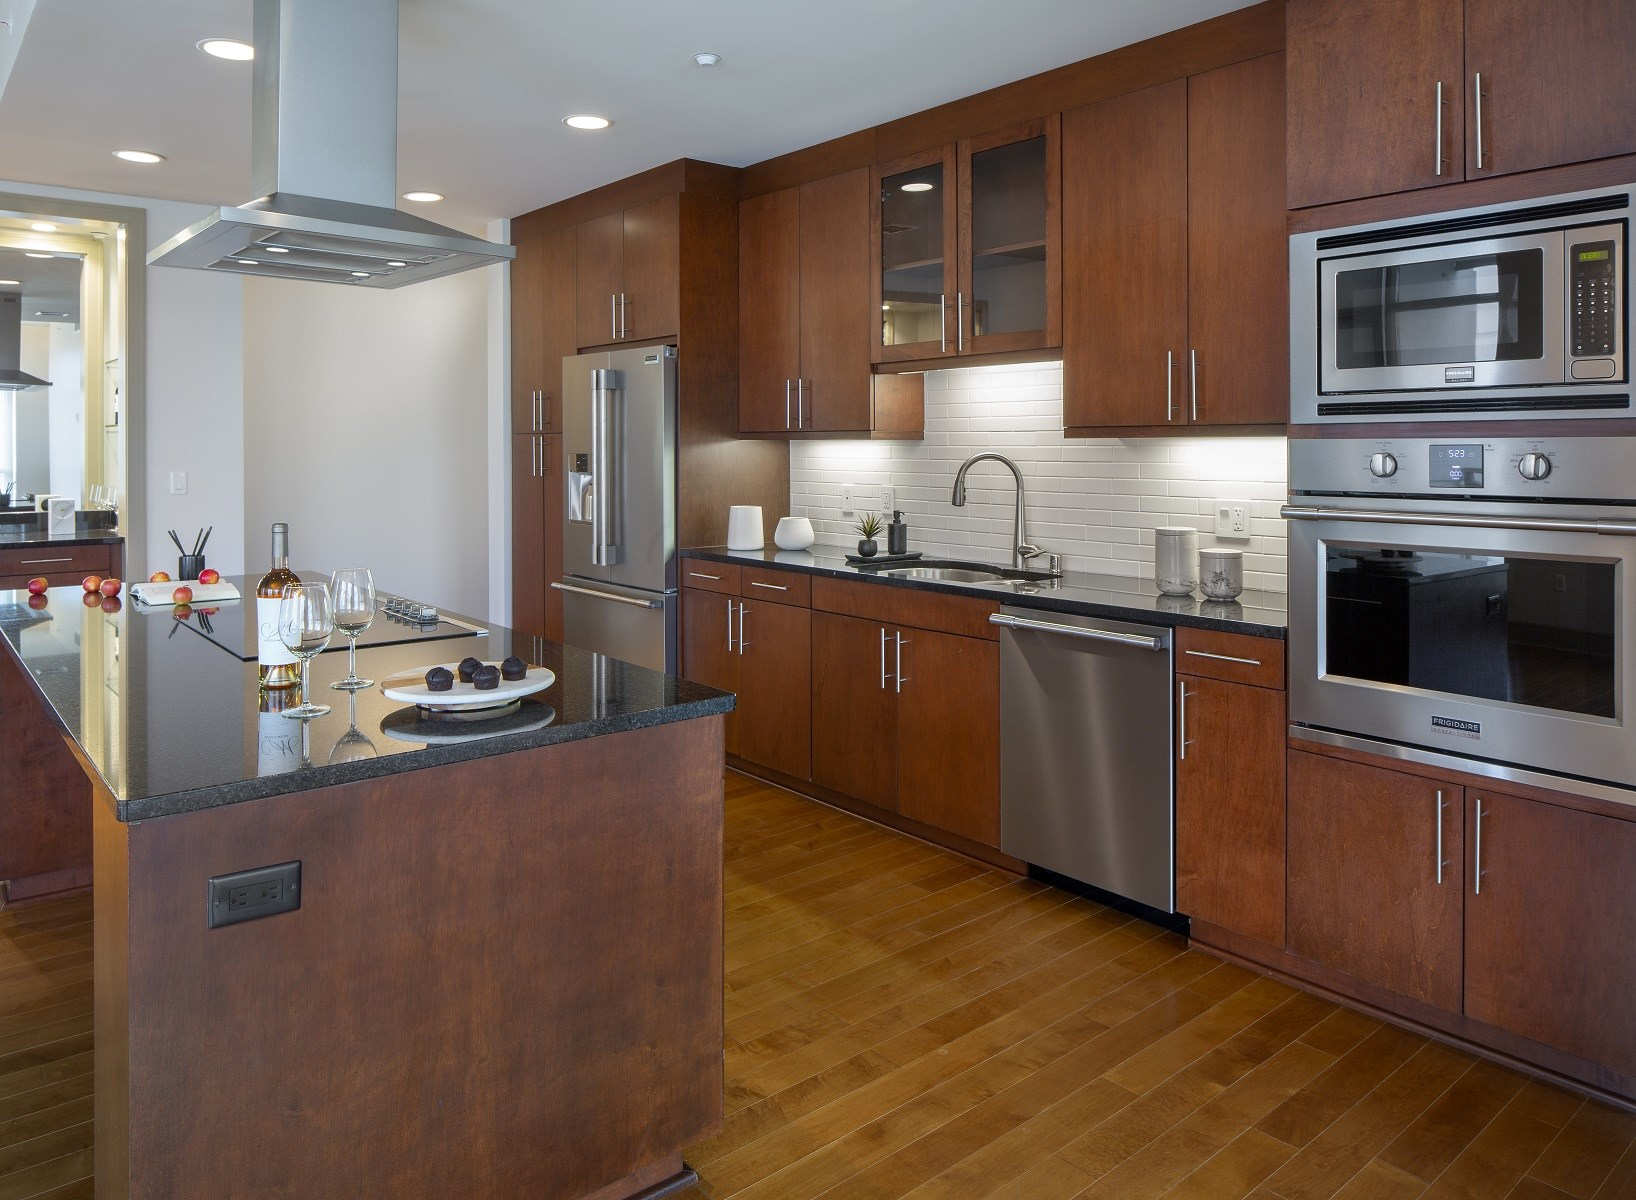 Westwood-Luxury-Apartments-Wilshire-Victoria-Unit-502-Stainless-Steel-Upgraded-Appliances